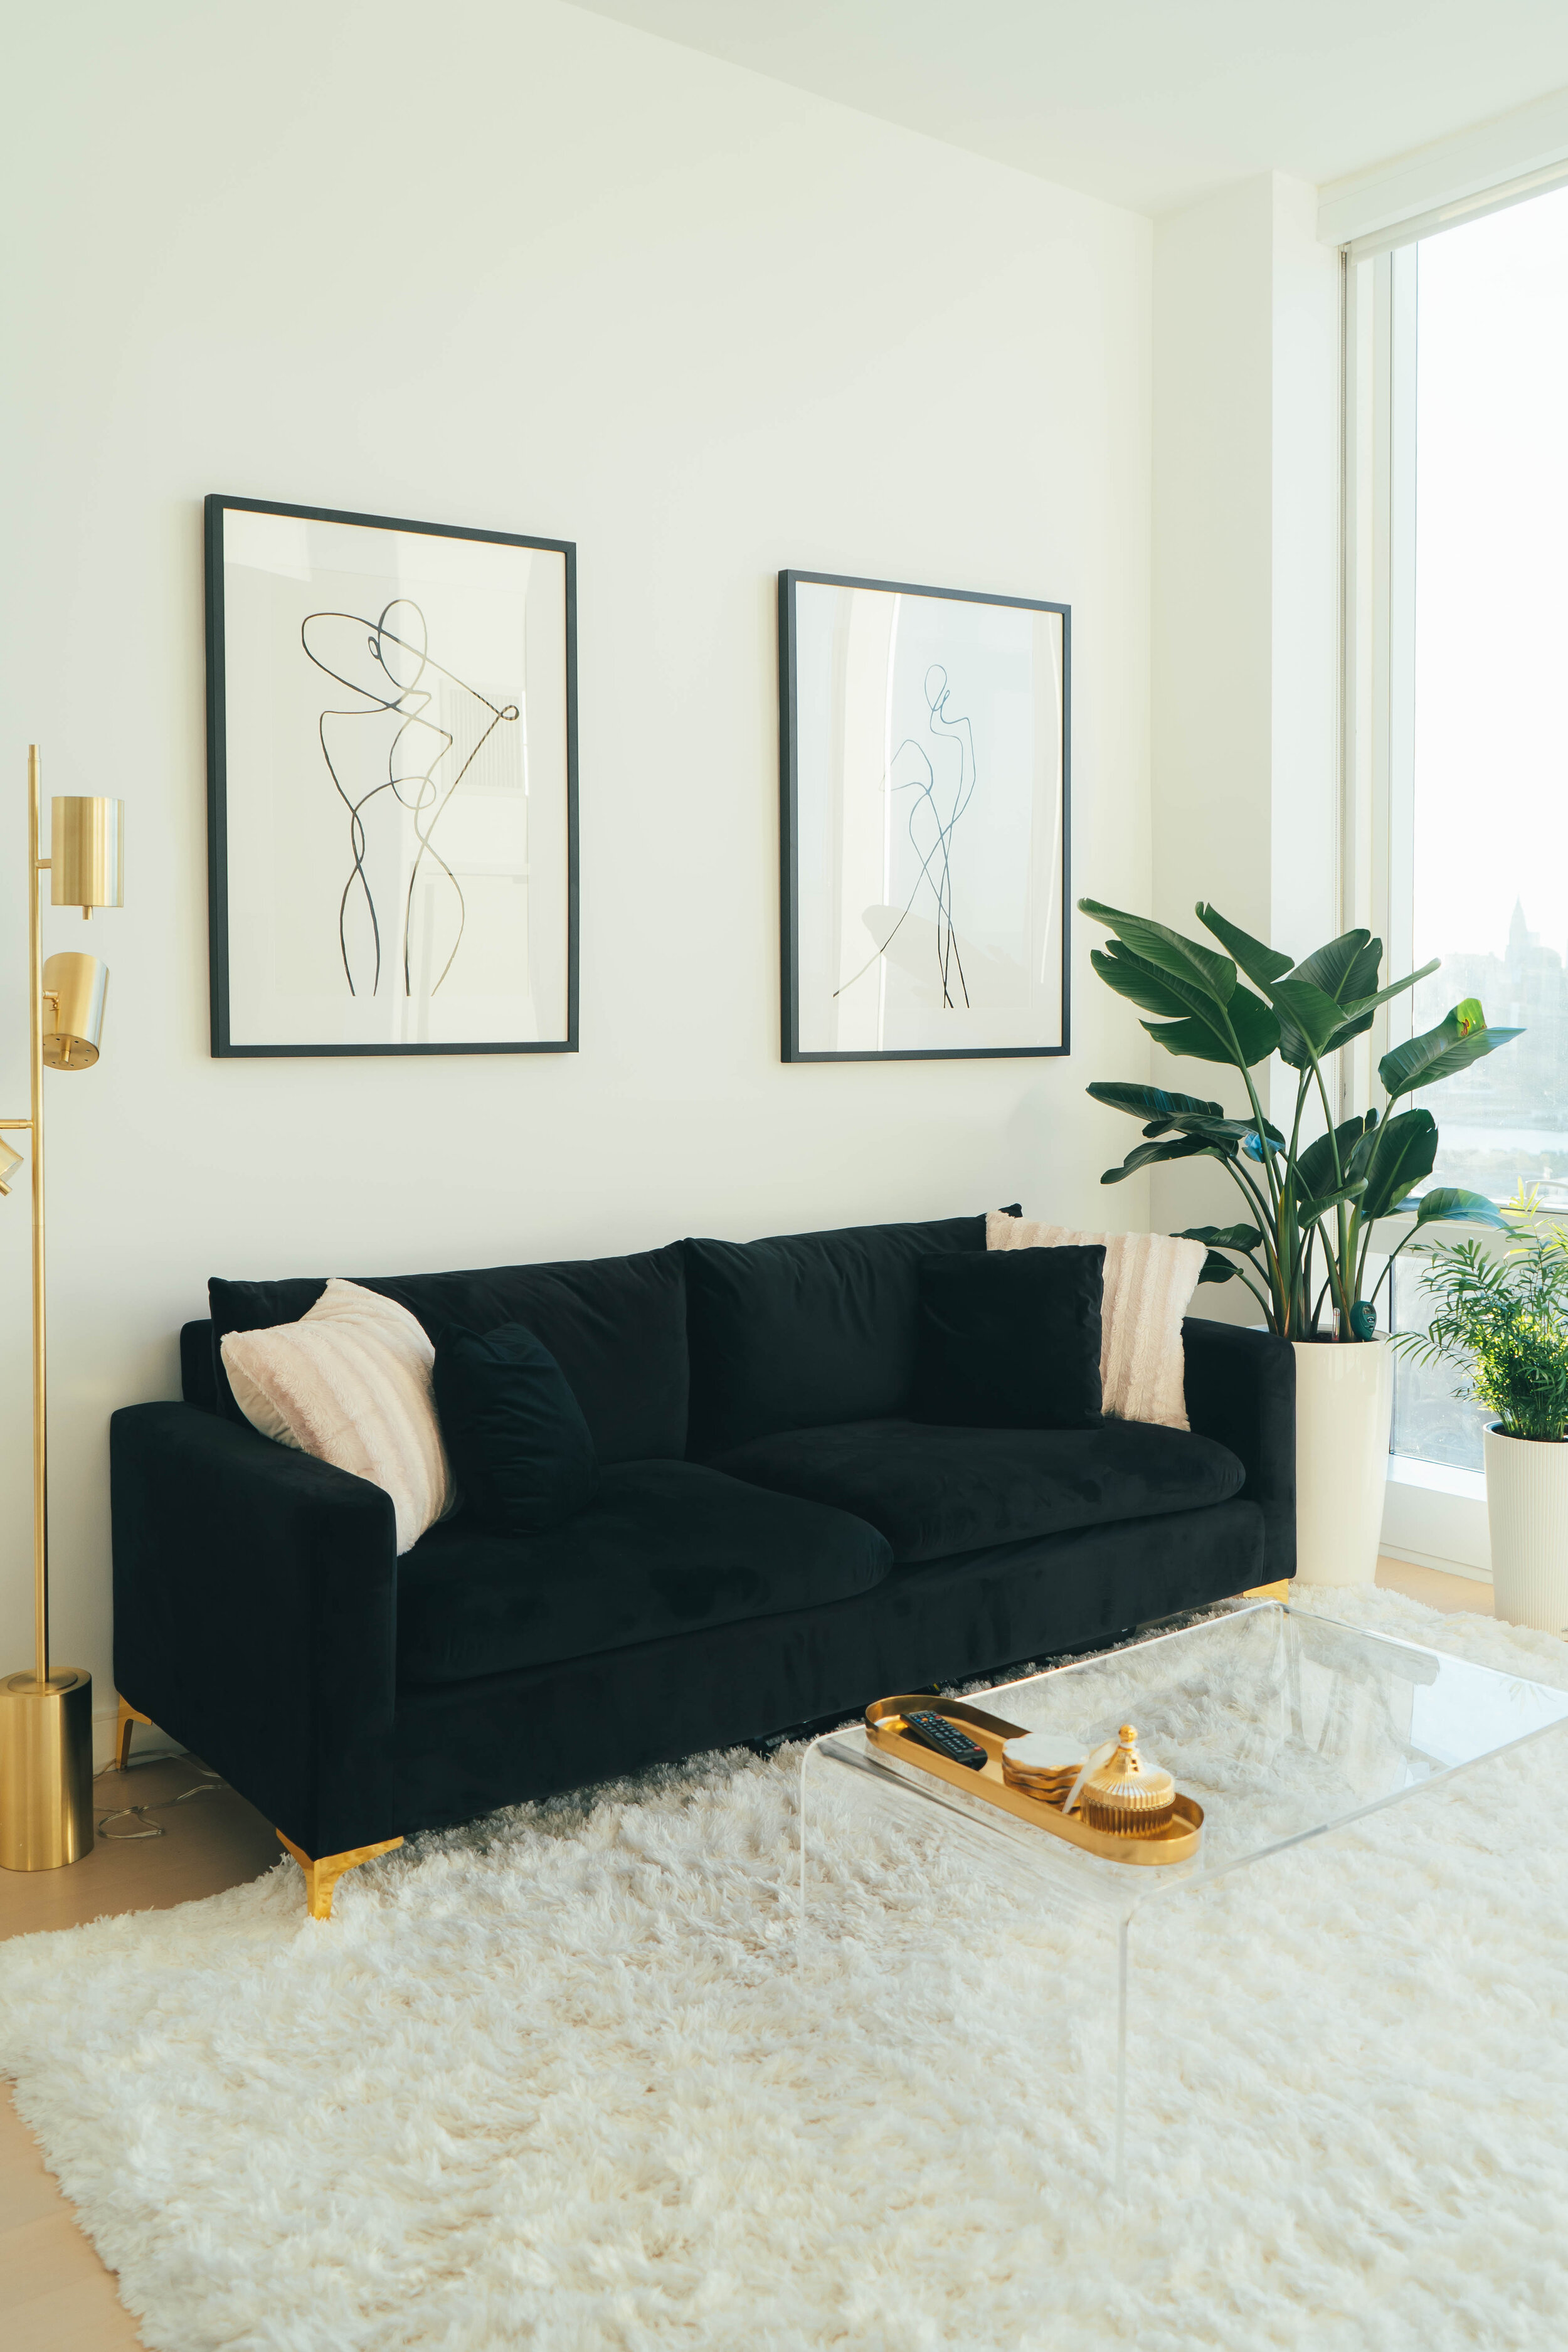 Erica Luo New York Blogger - Apartment Tour nyc8.jpg